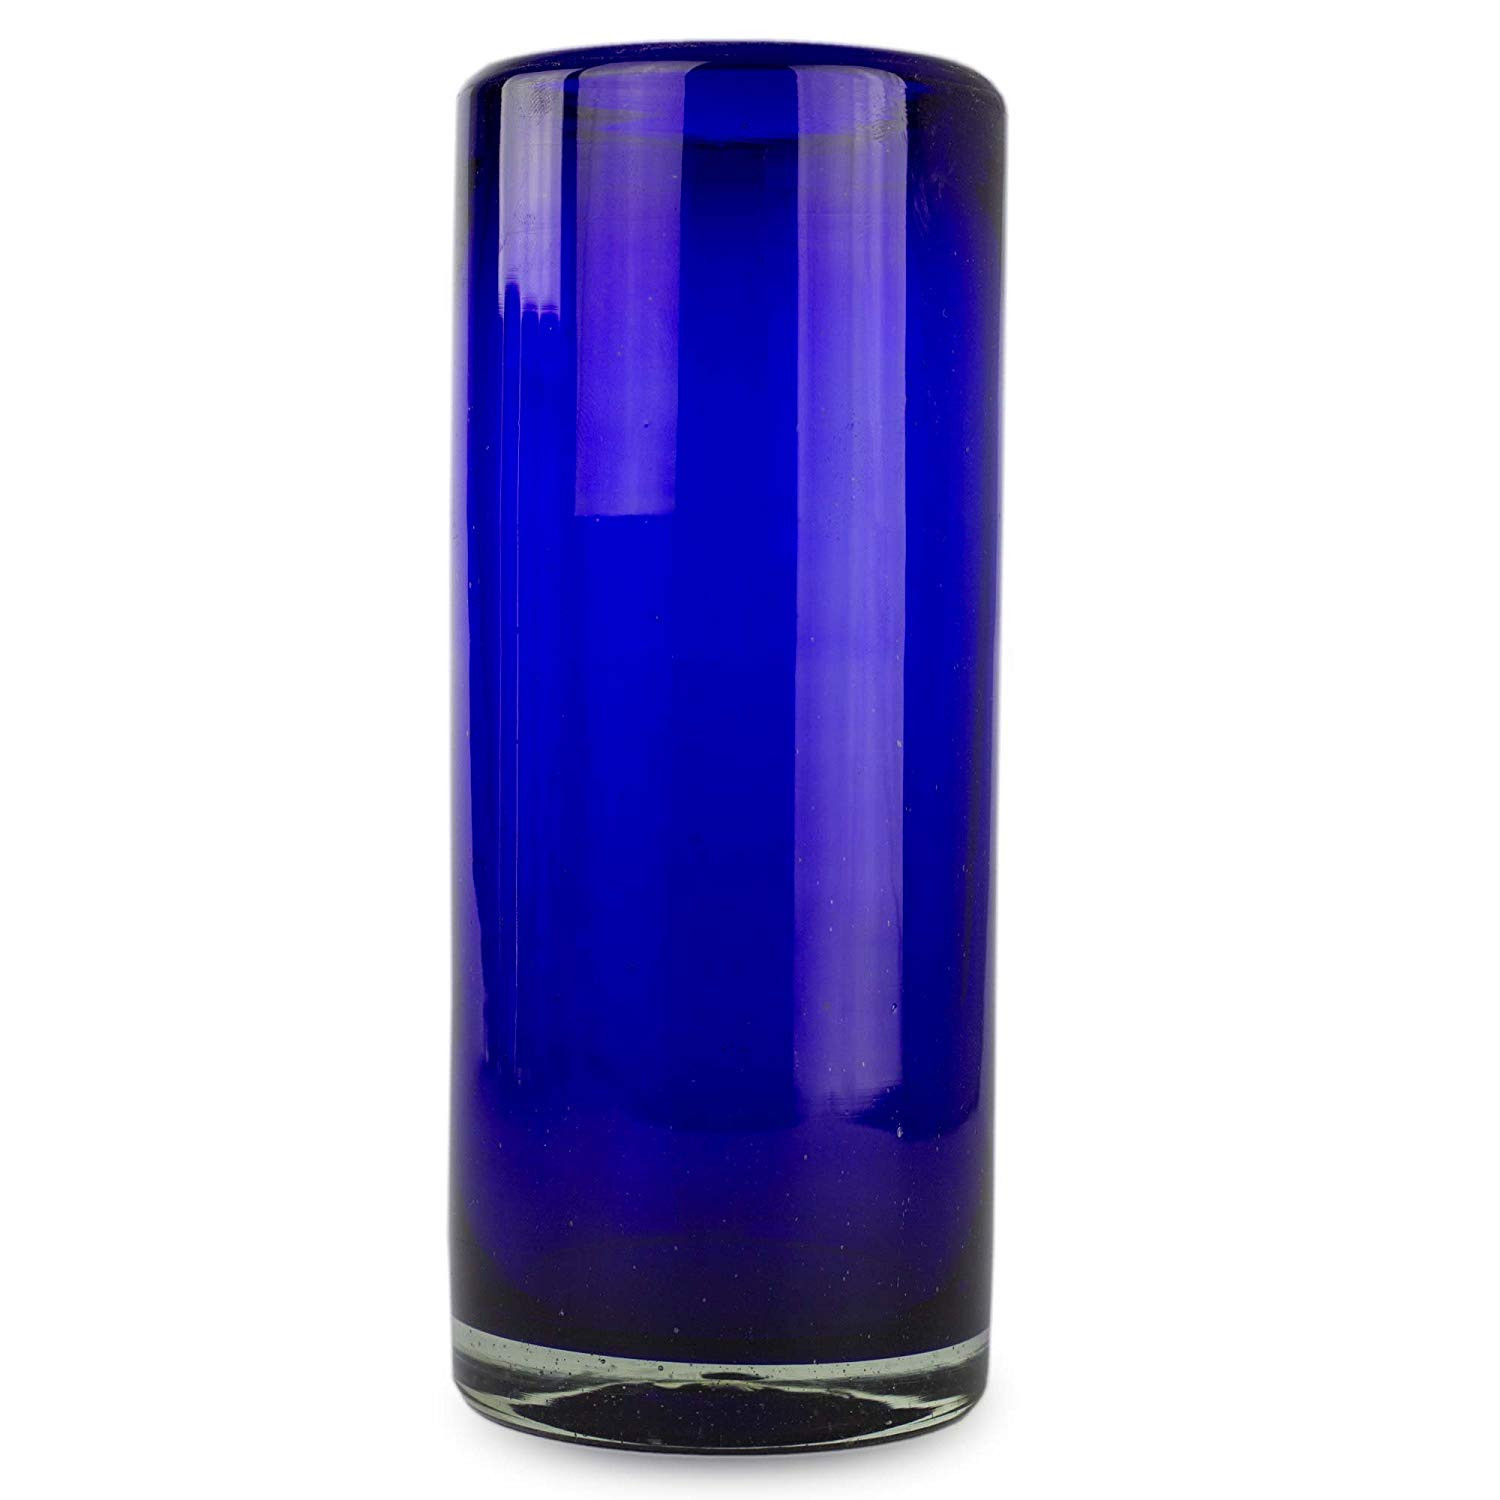 kate spade crystal vase of amazon com novica artisan crafted dark blue recycled glass hand throughout amazon com novica artisan crafted dark blue recycled glass hand blown cocktail glasses 13 oz pure cobalt set of 6 highball glasses